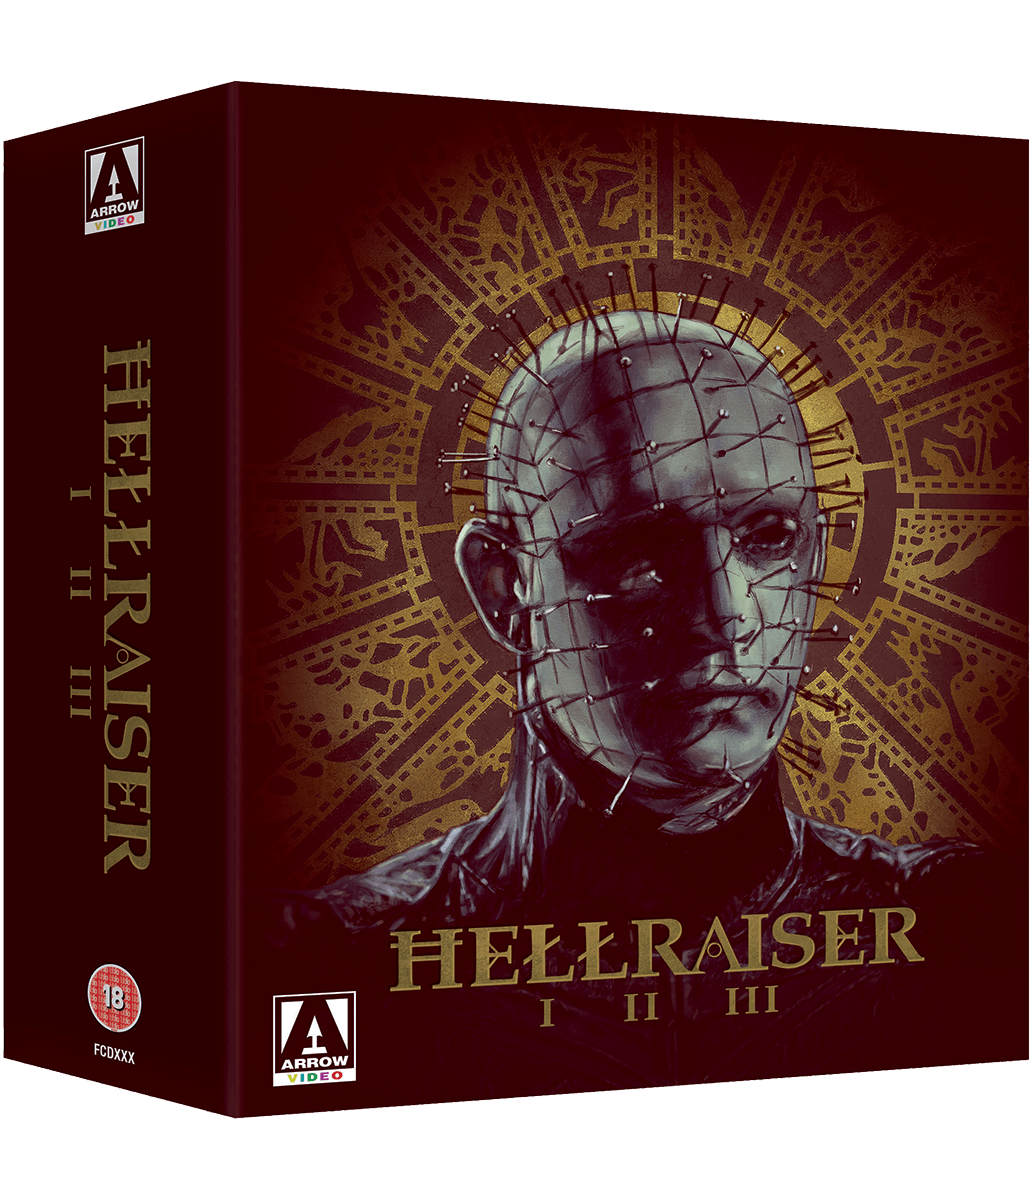 Trilogy set blu ray. Pinhead drawing hellraiser box picture royalty free stock